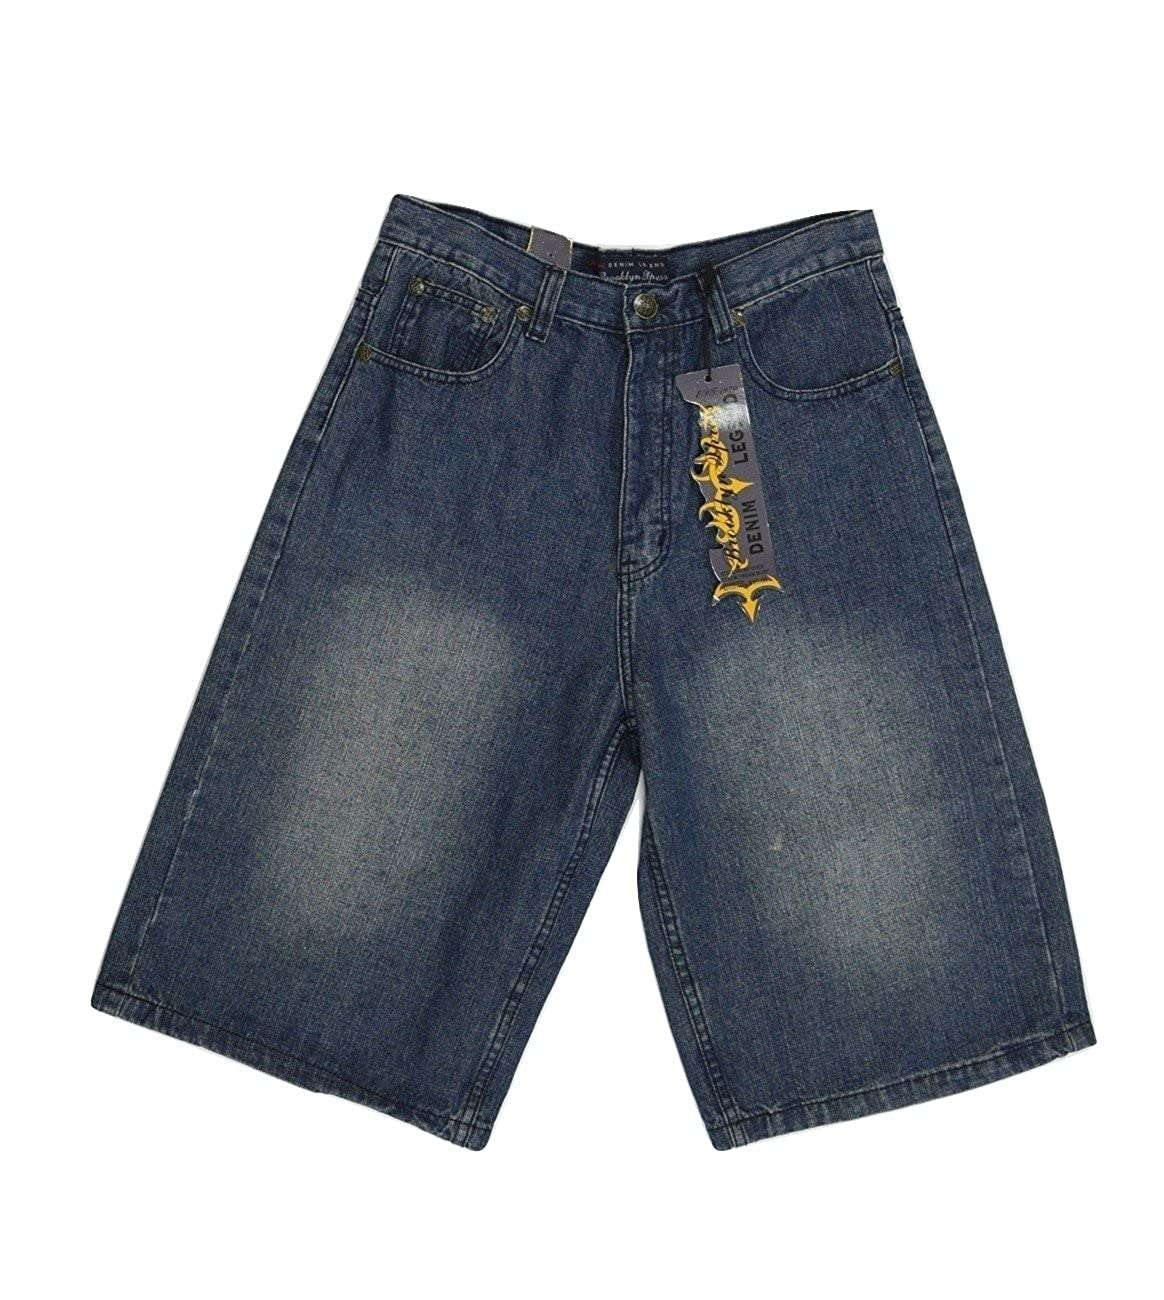 Men/'s Brooklyn Xpress Denim Legend Shorts 222472519284